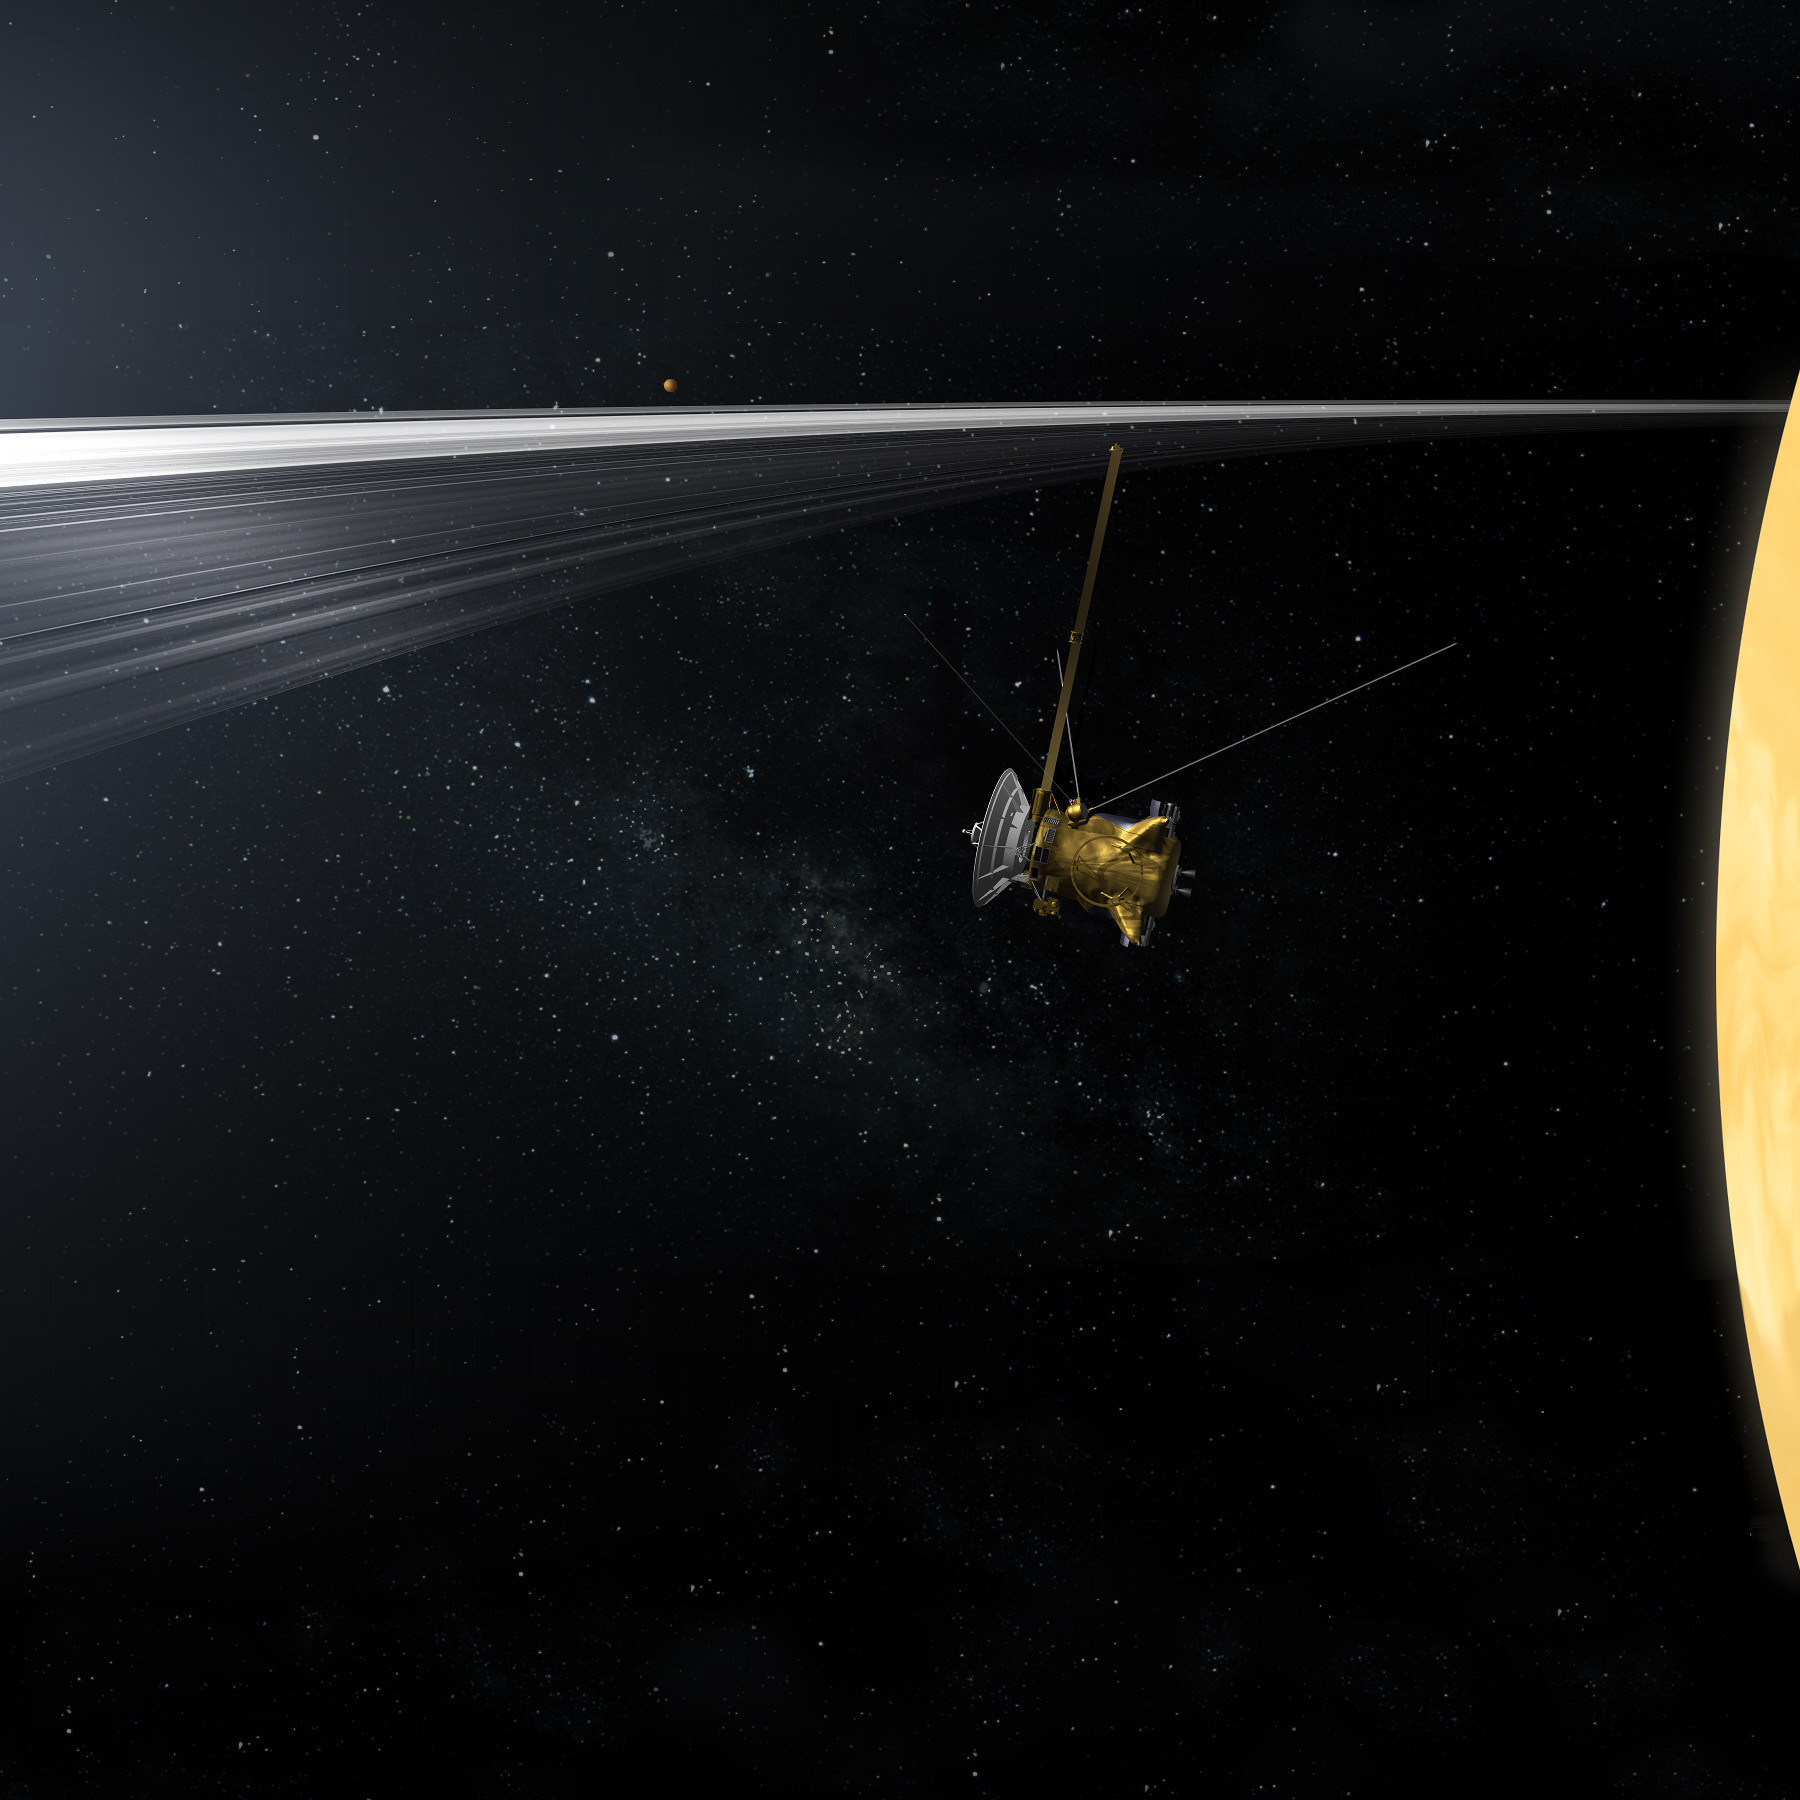 After 13 years at Saturn, NASA's Cassini spacecraft is ...